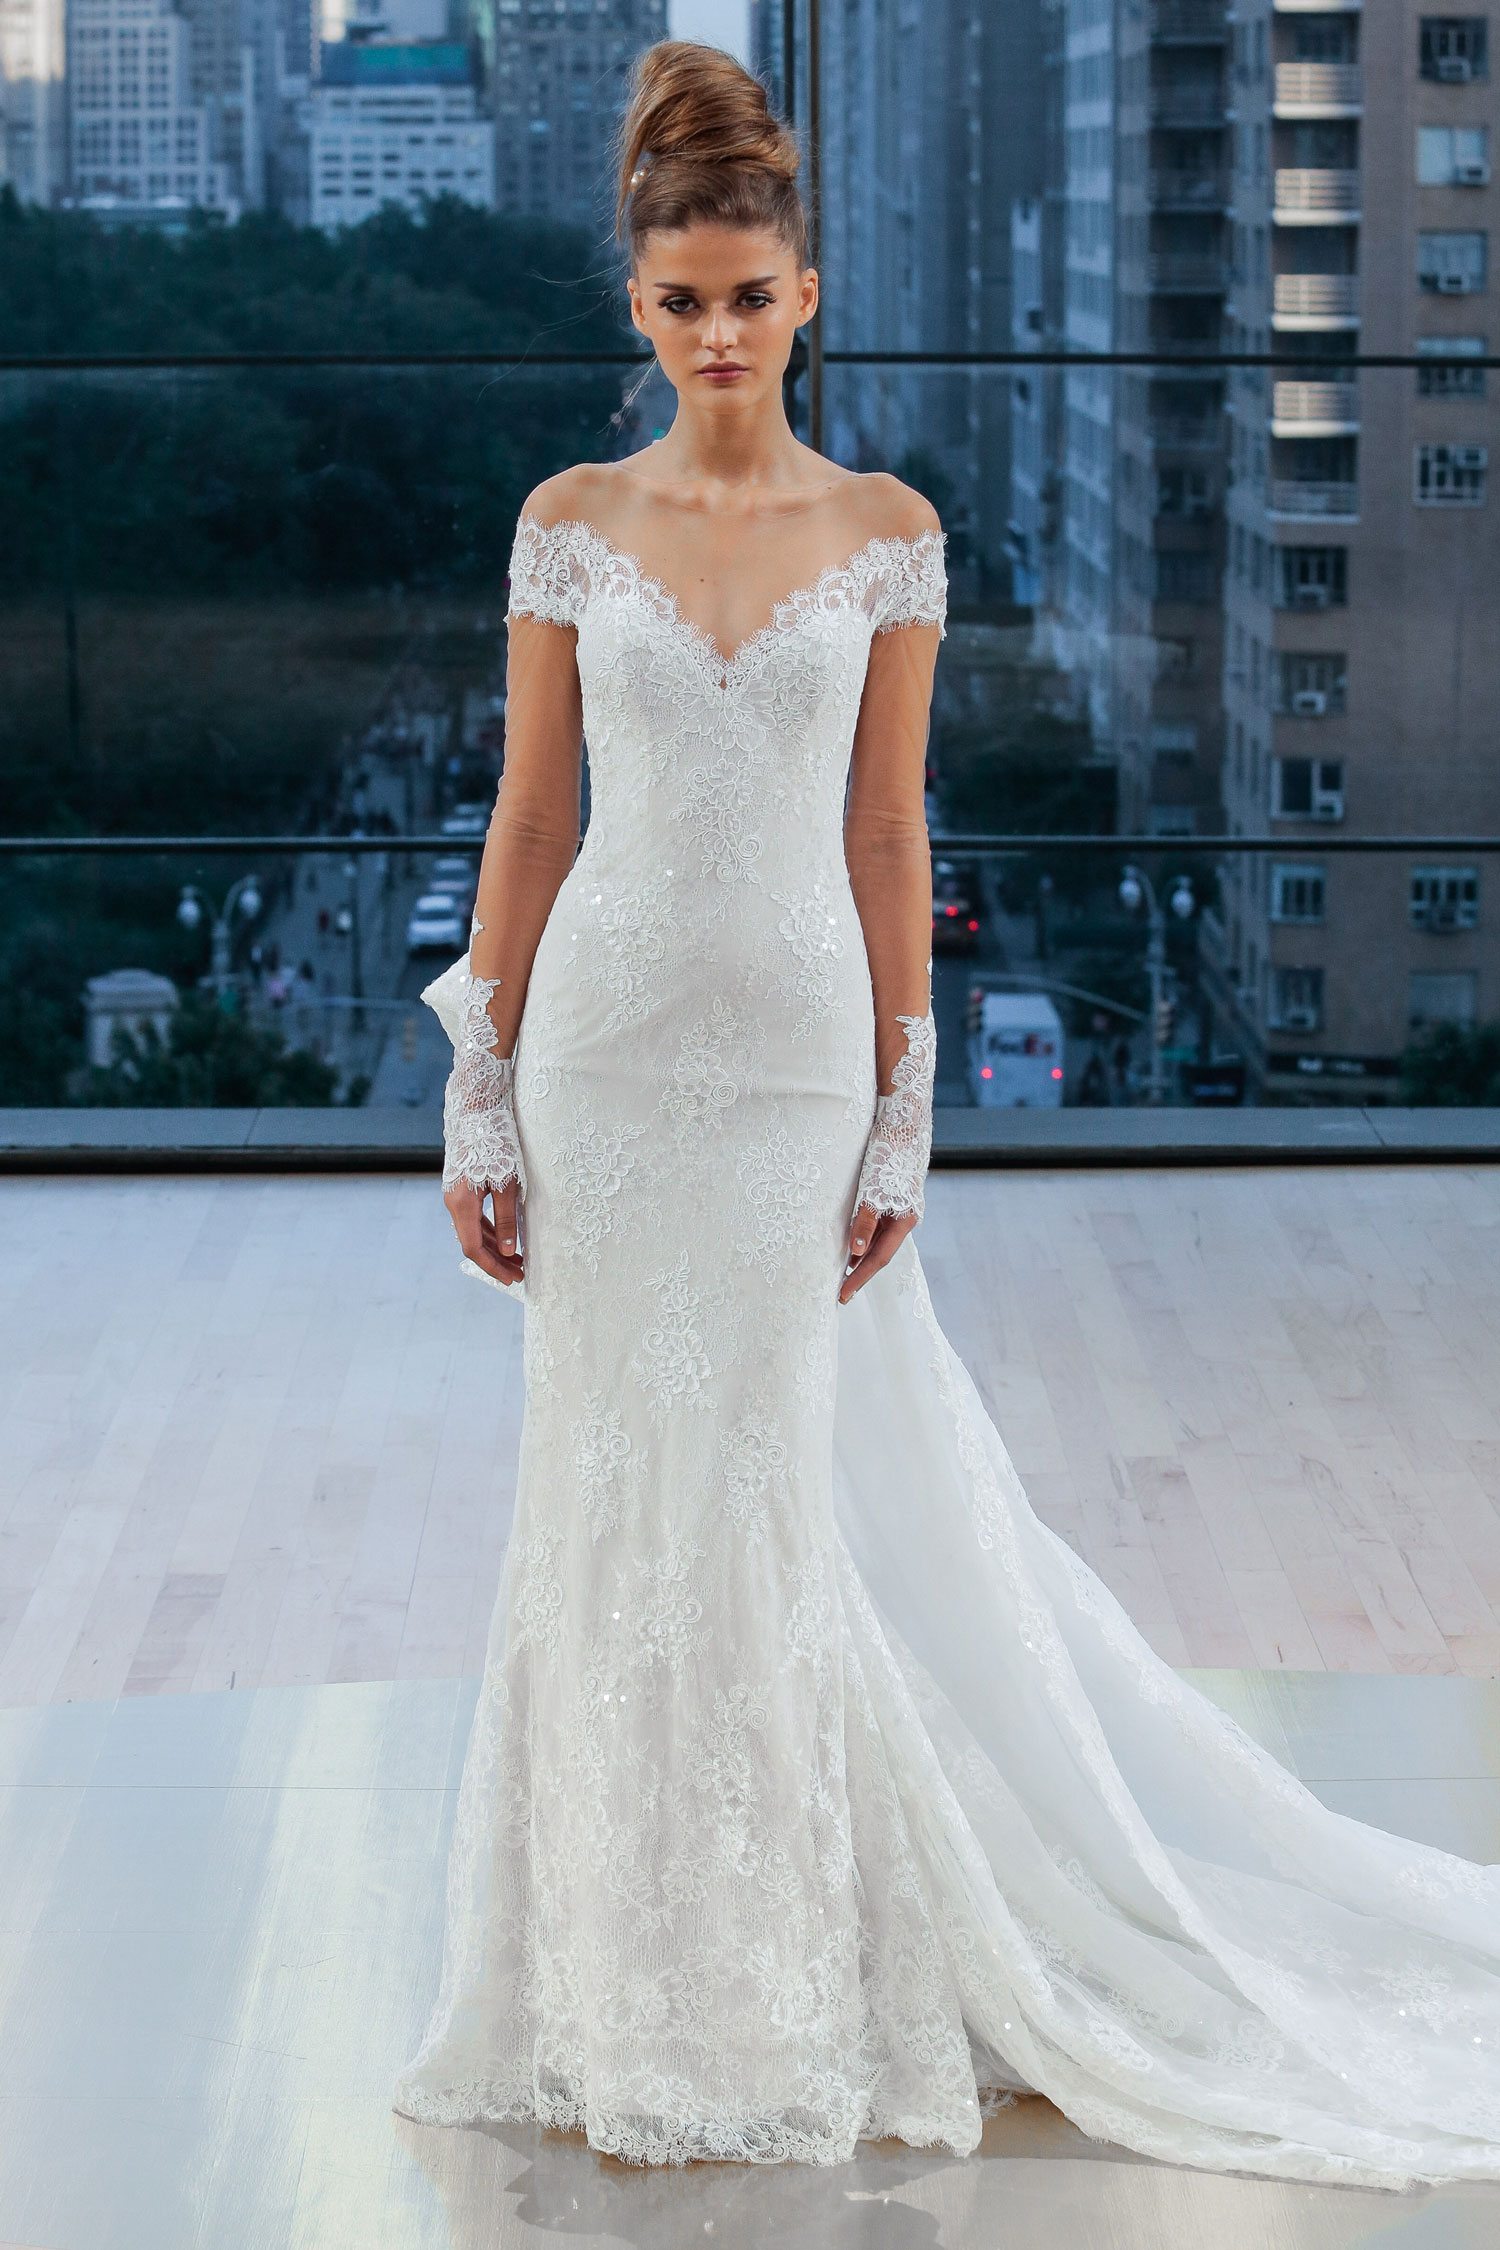 Fifty Shades of Grey Wedding Dresses – Fashion dresses